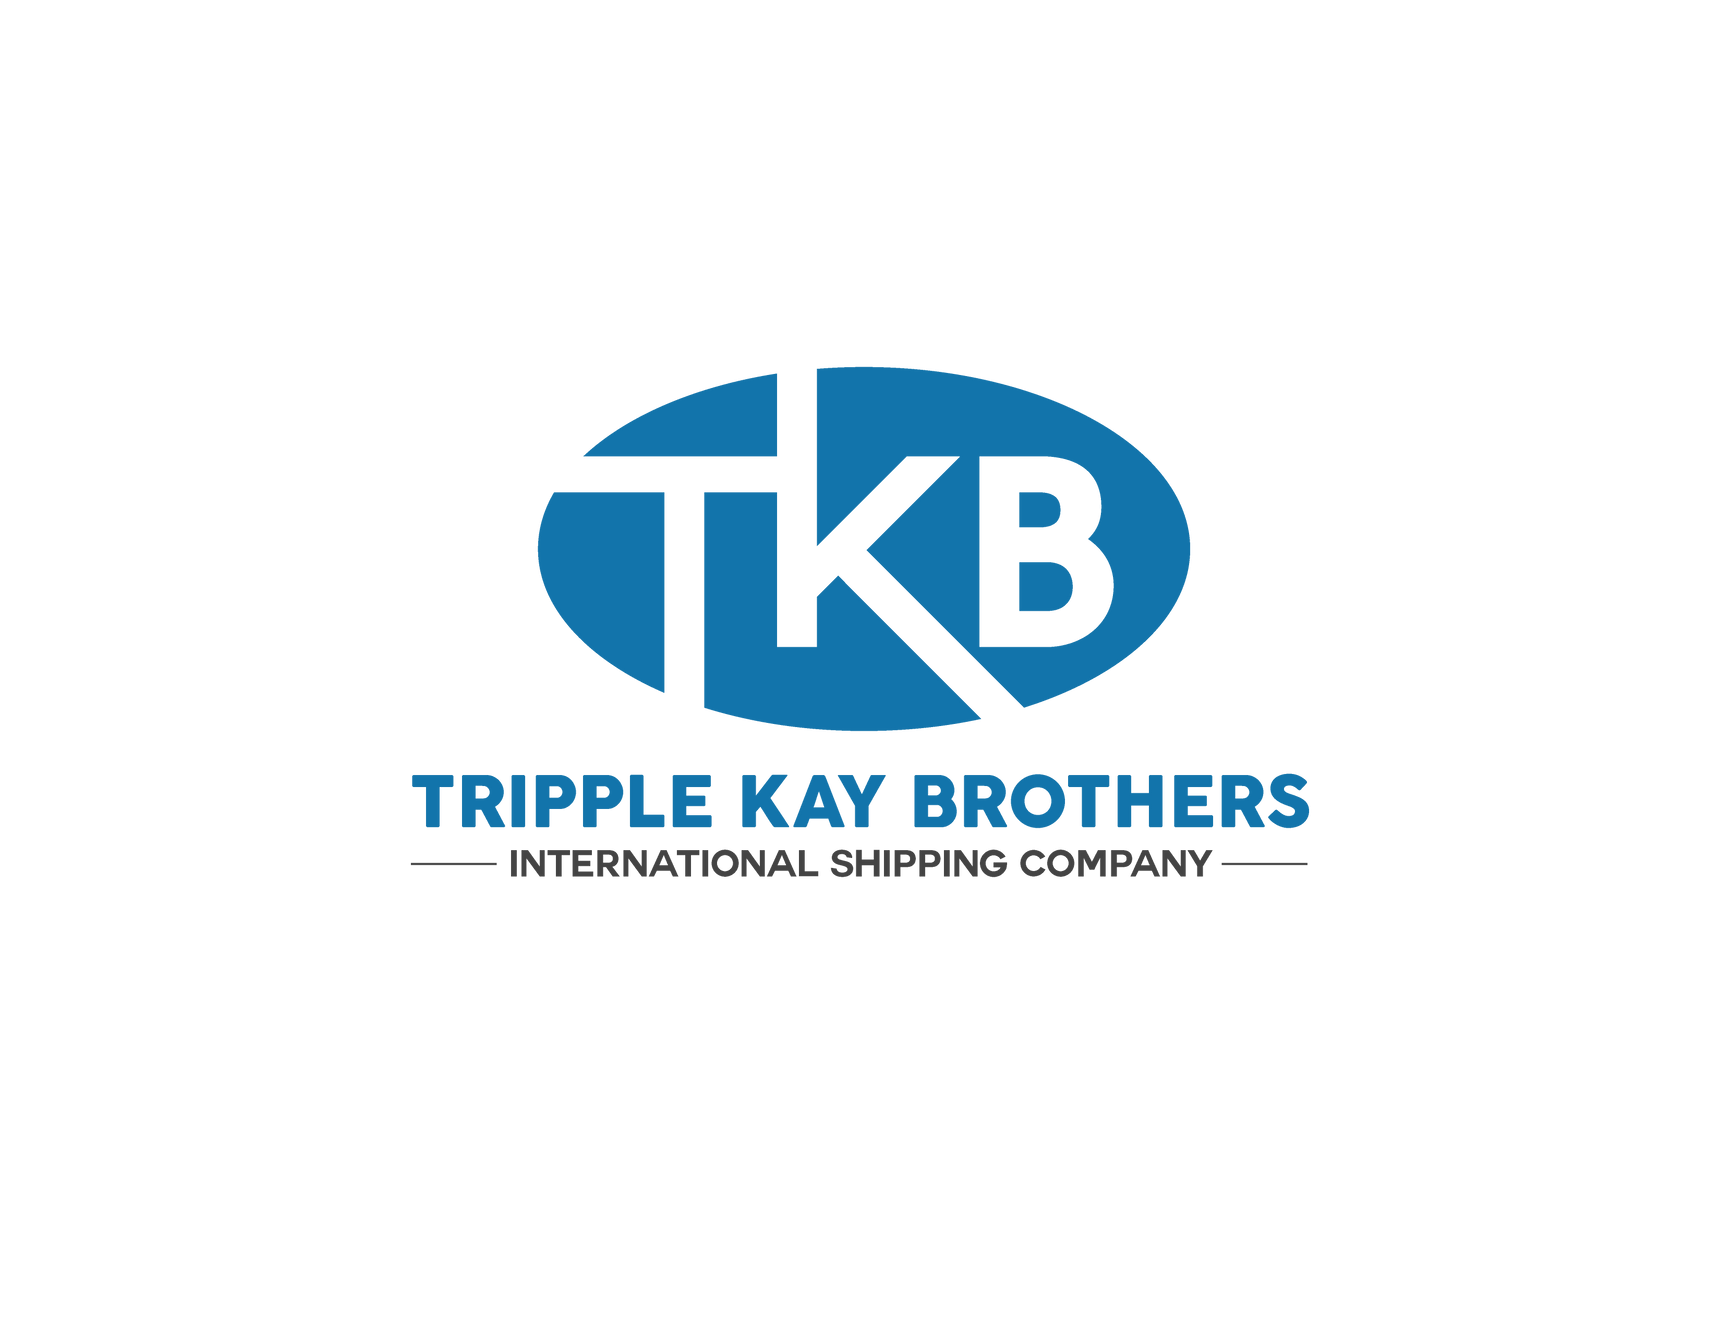 Tripple Kay Brothers | International Ocean Freight Shipping